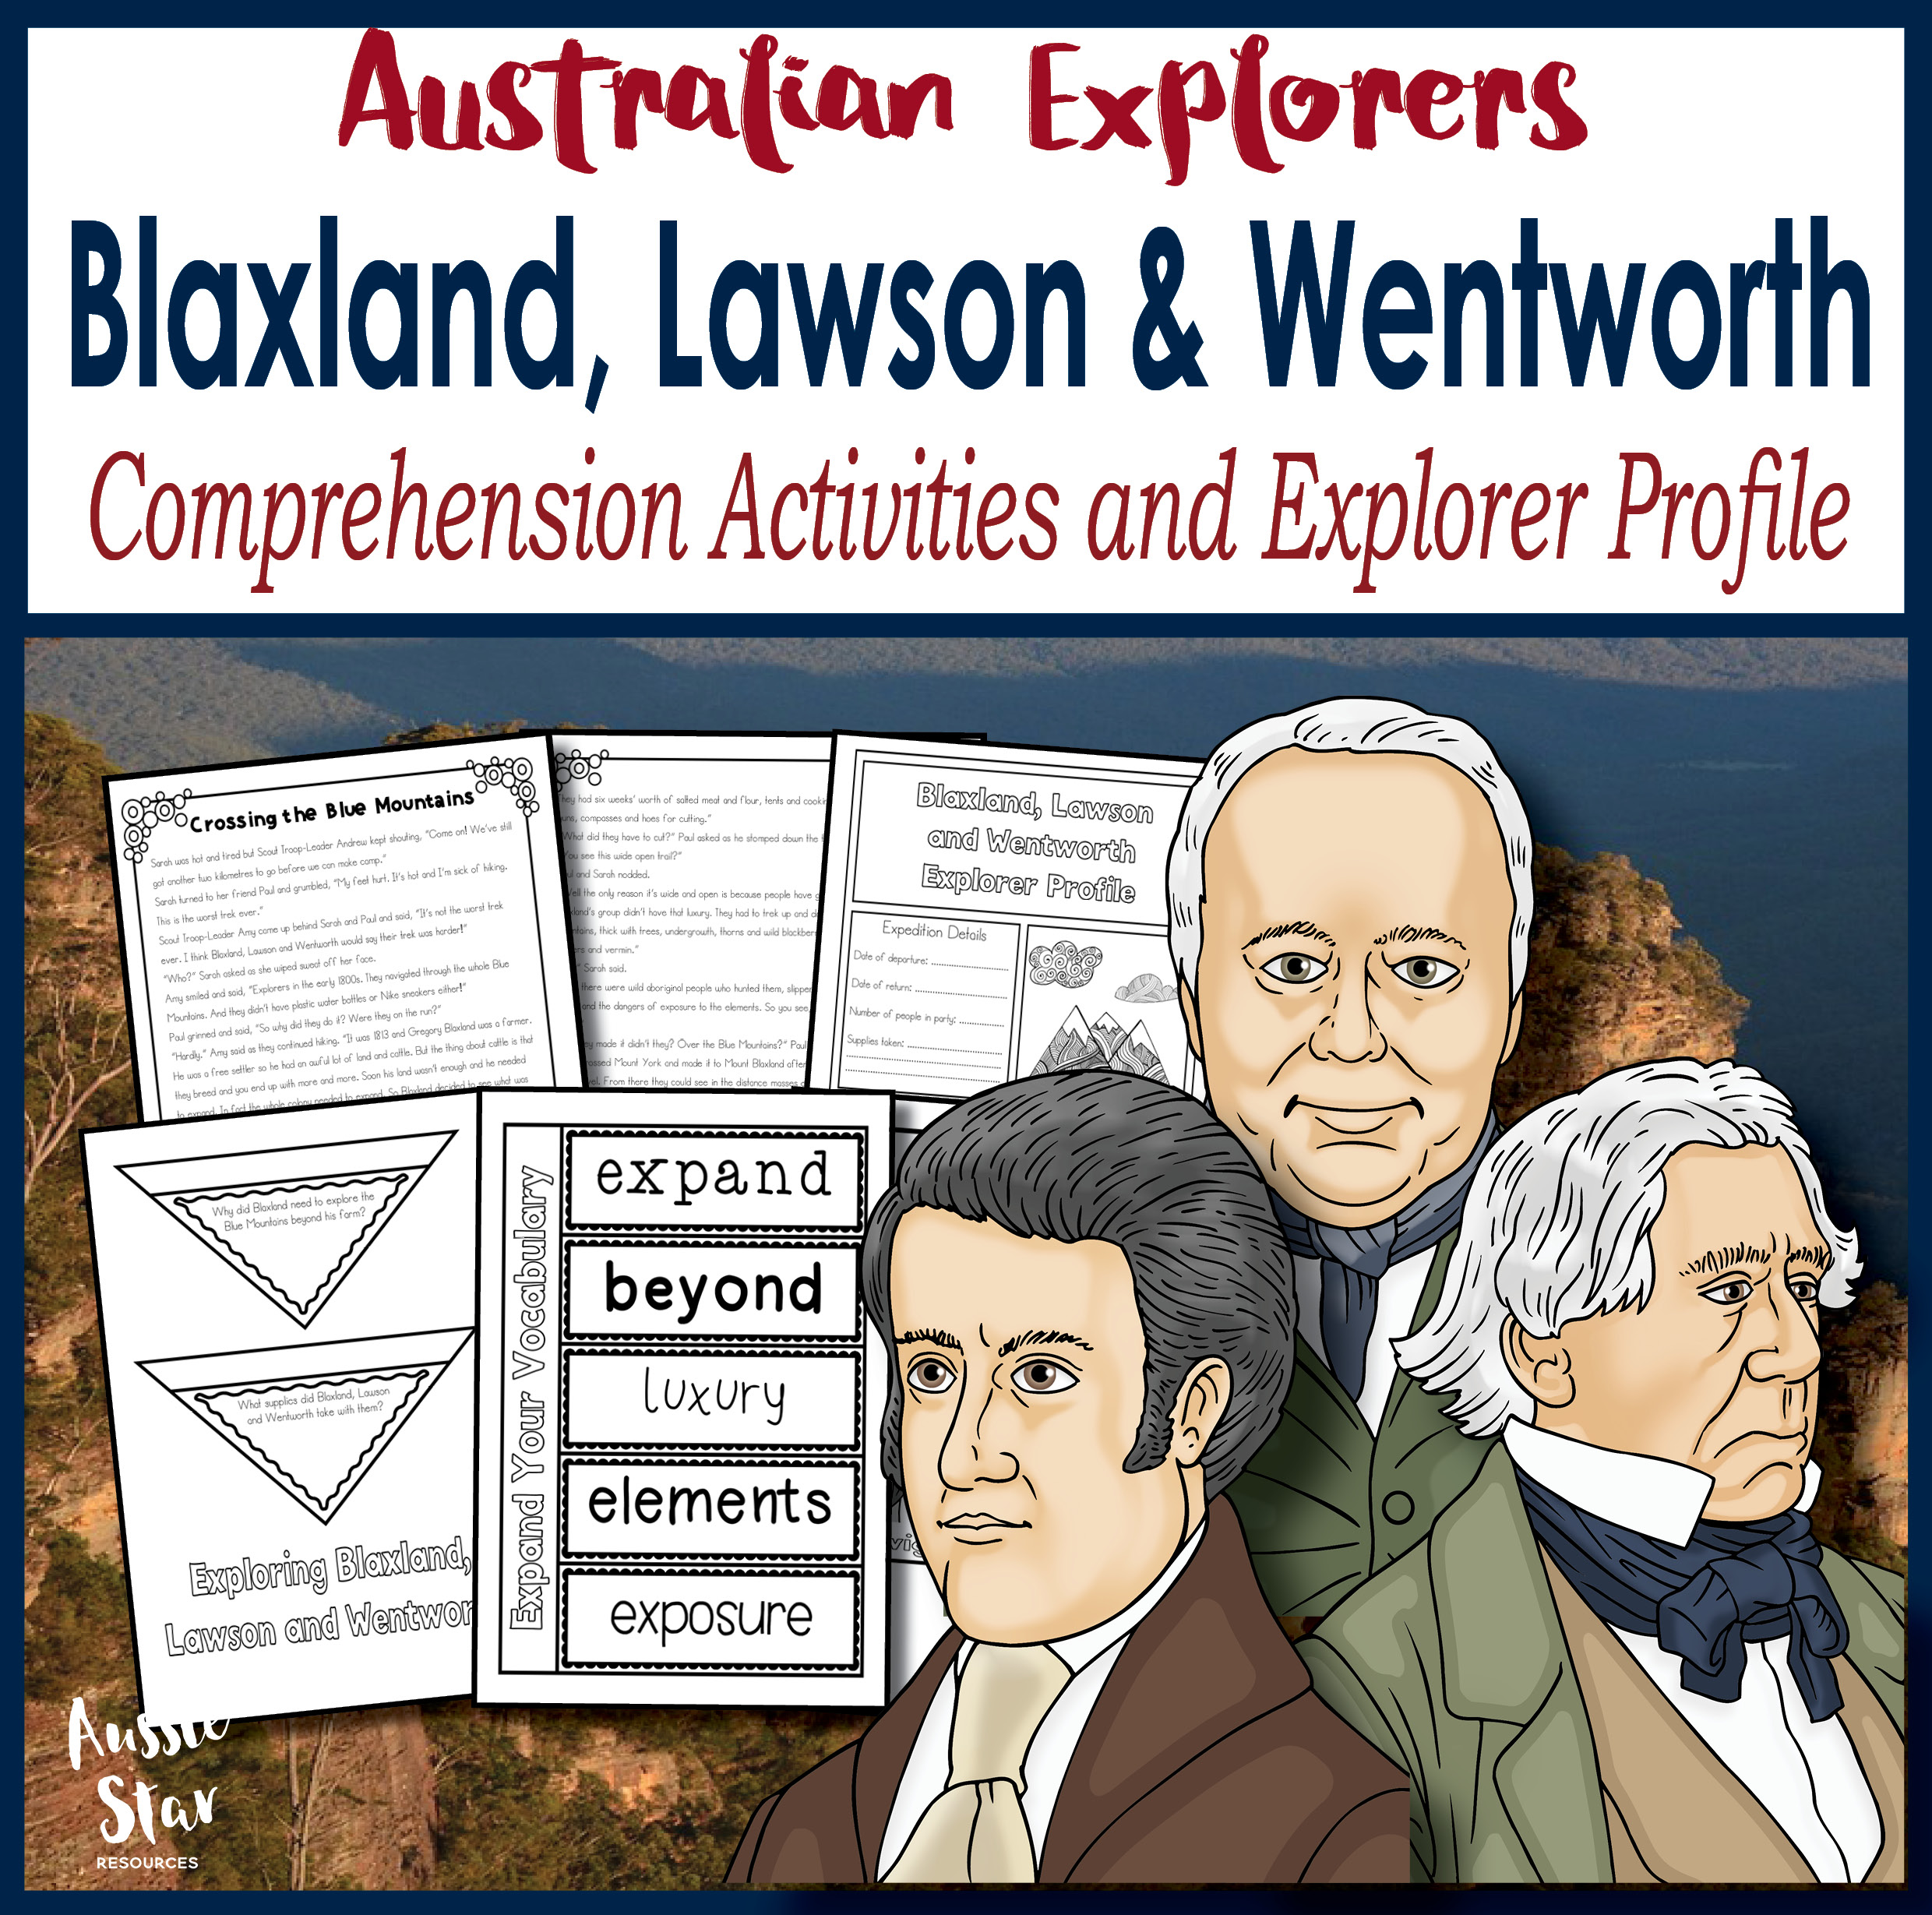 Blaxland, Lawson and Wentworth comprehension activities cover